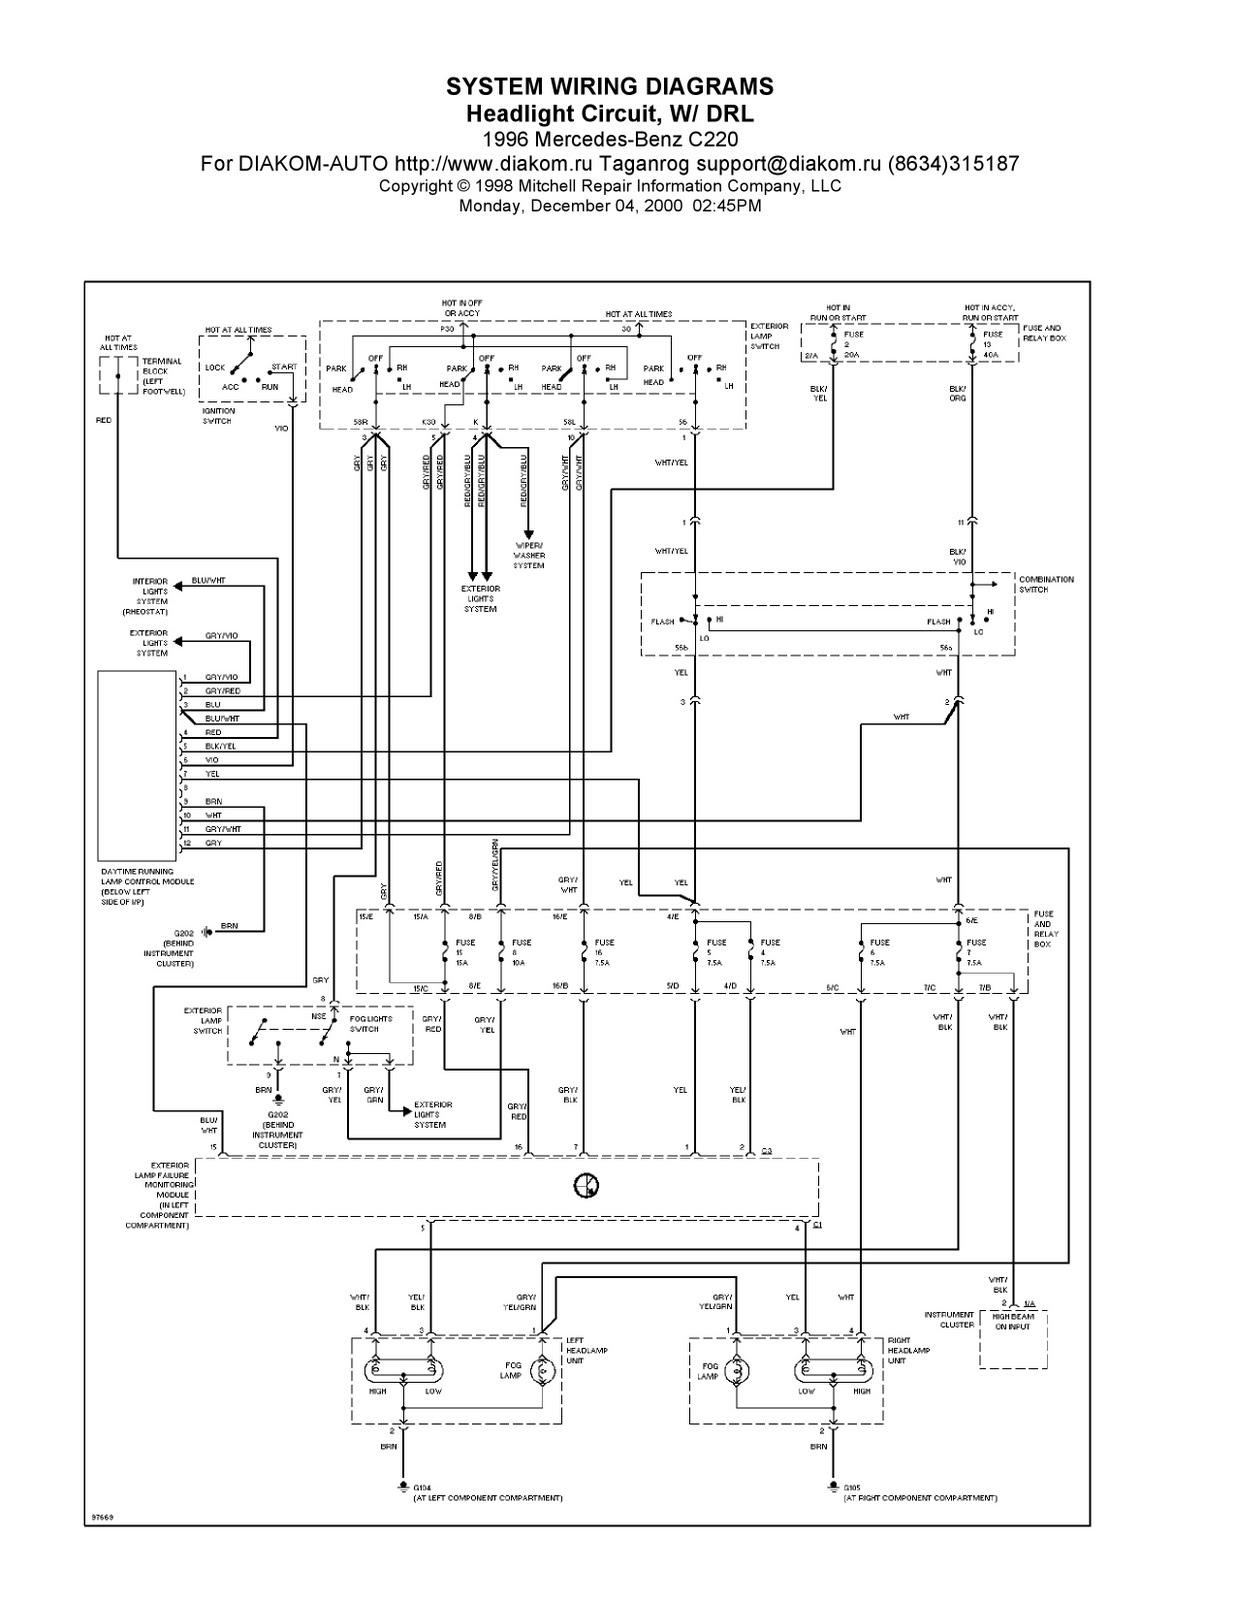 headlight wiring diagram for c220 mercedes review ebooks